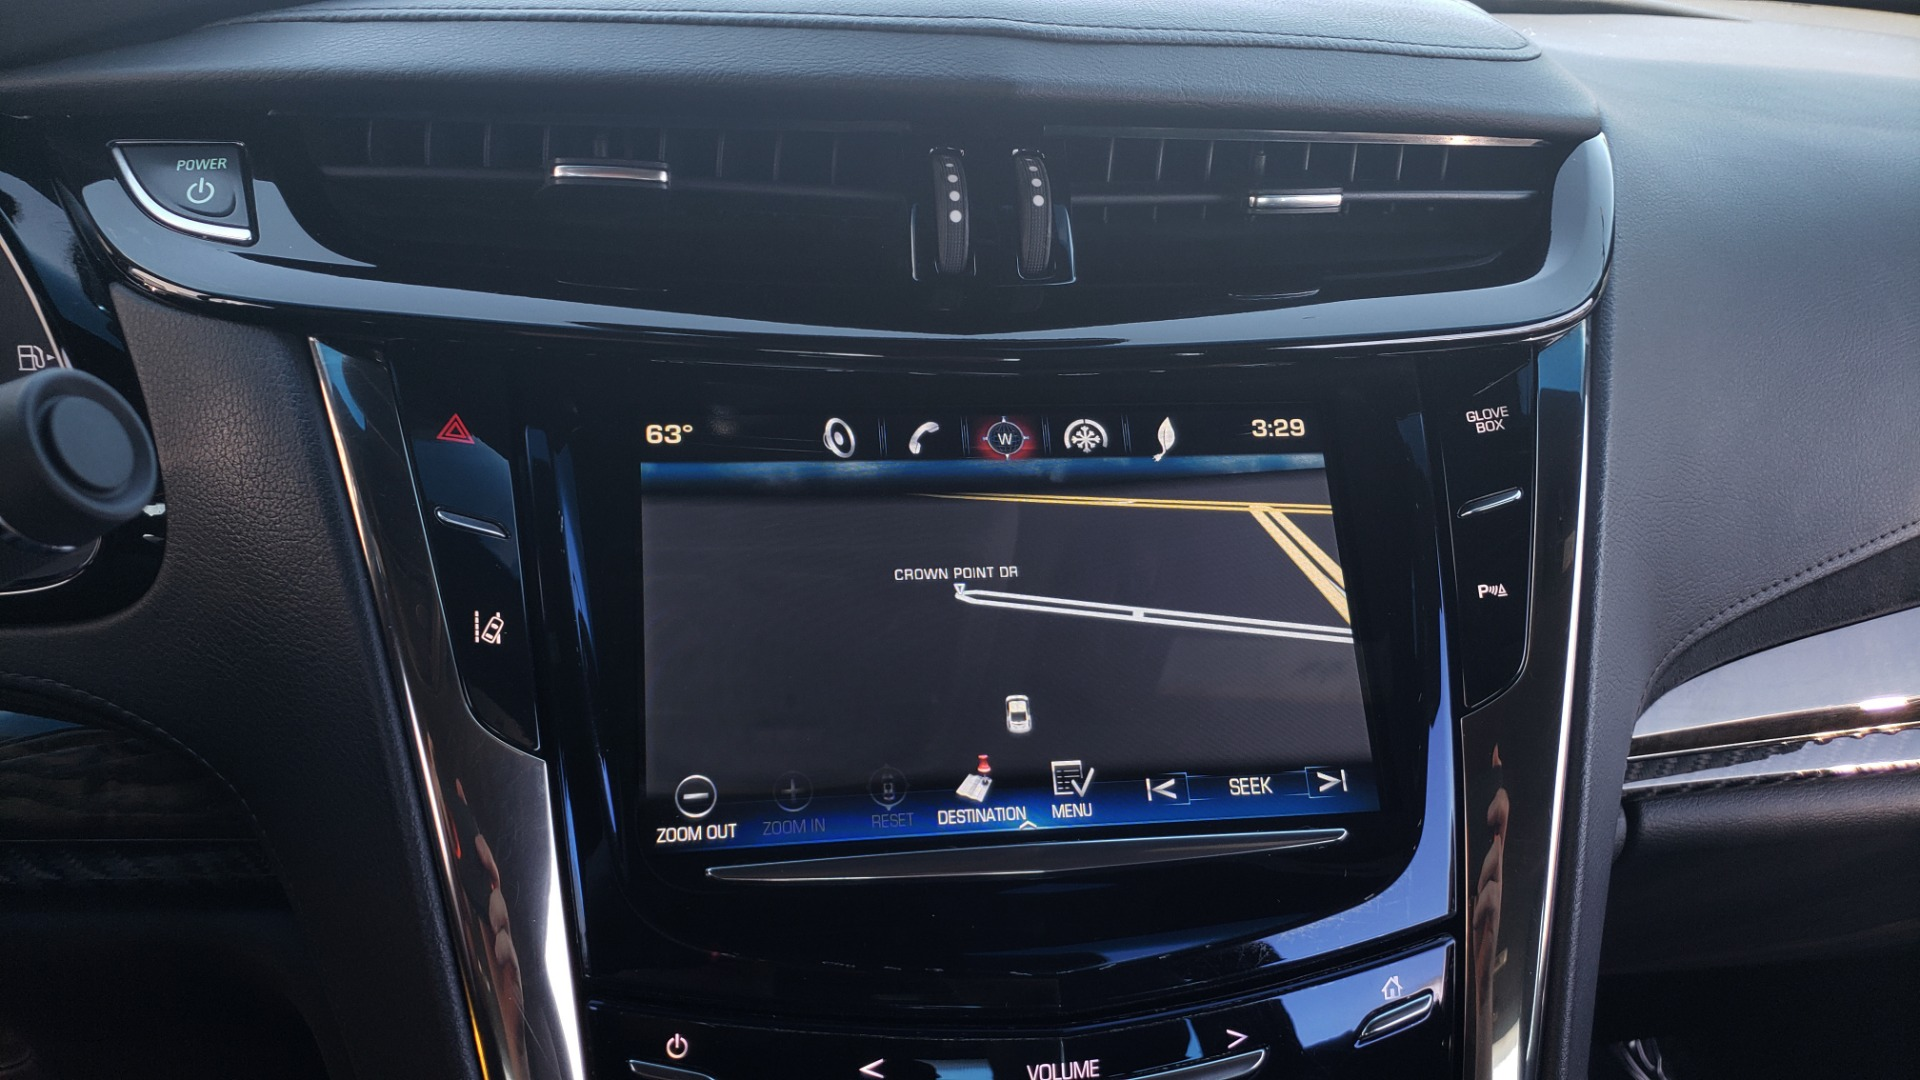 Used 2014 Cadillac ELR 2DR COUPE / HYBRID / NAV / BOSE / HEATED SEATS / REARVIEW for sale $19,995 at Formula Imports in Charlotte NC 28227 51